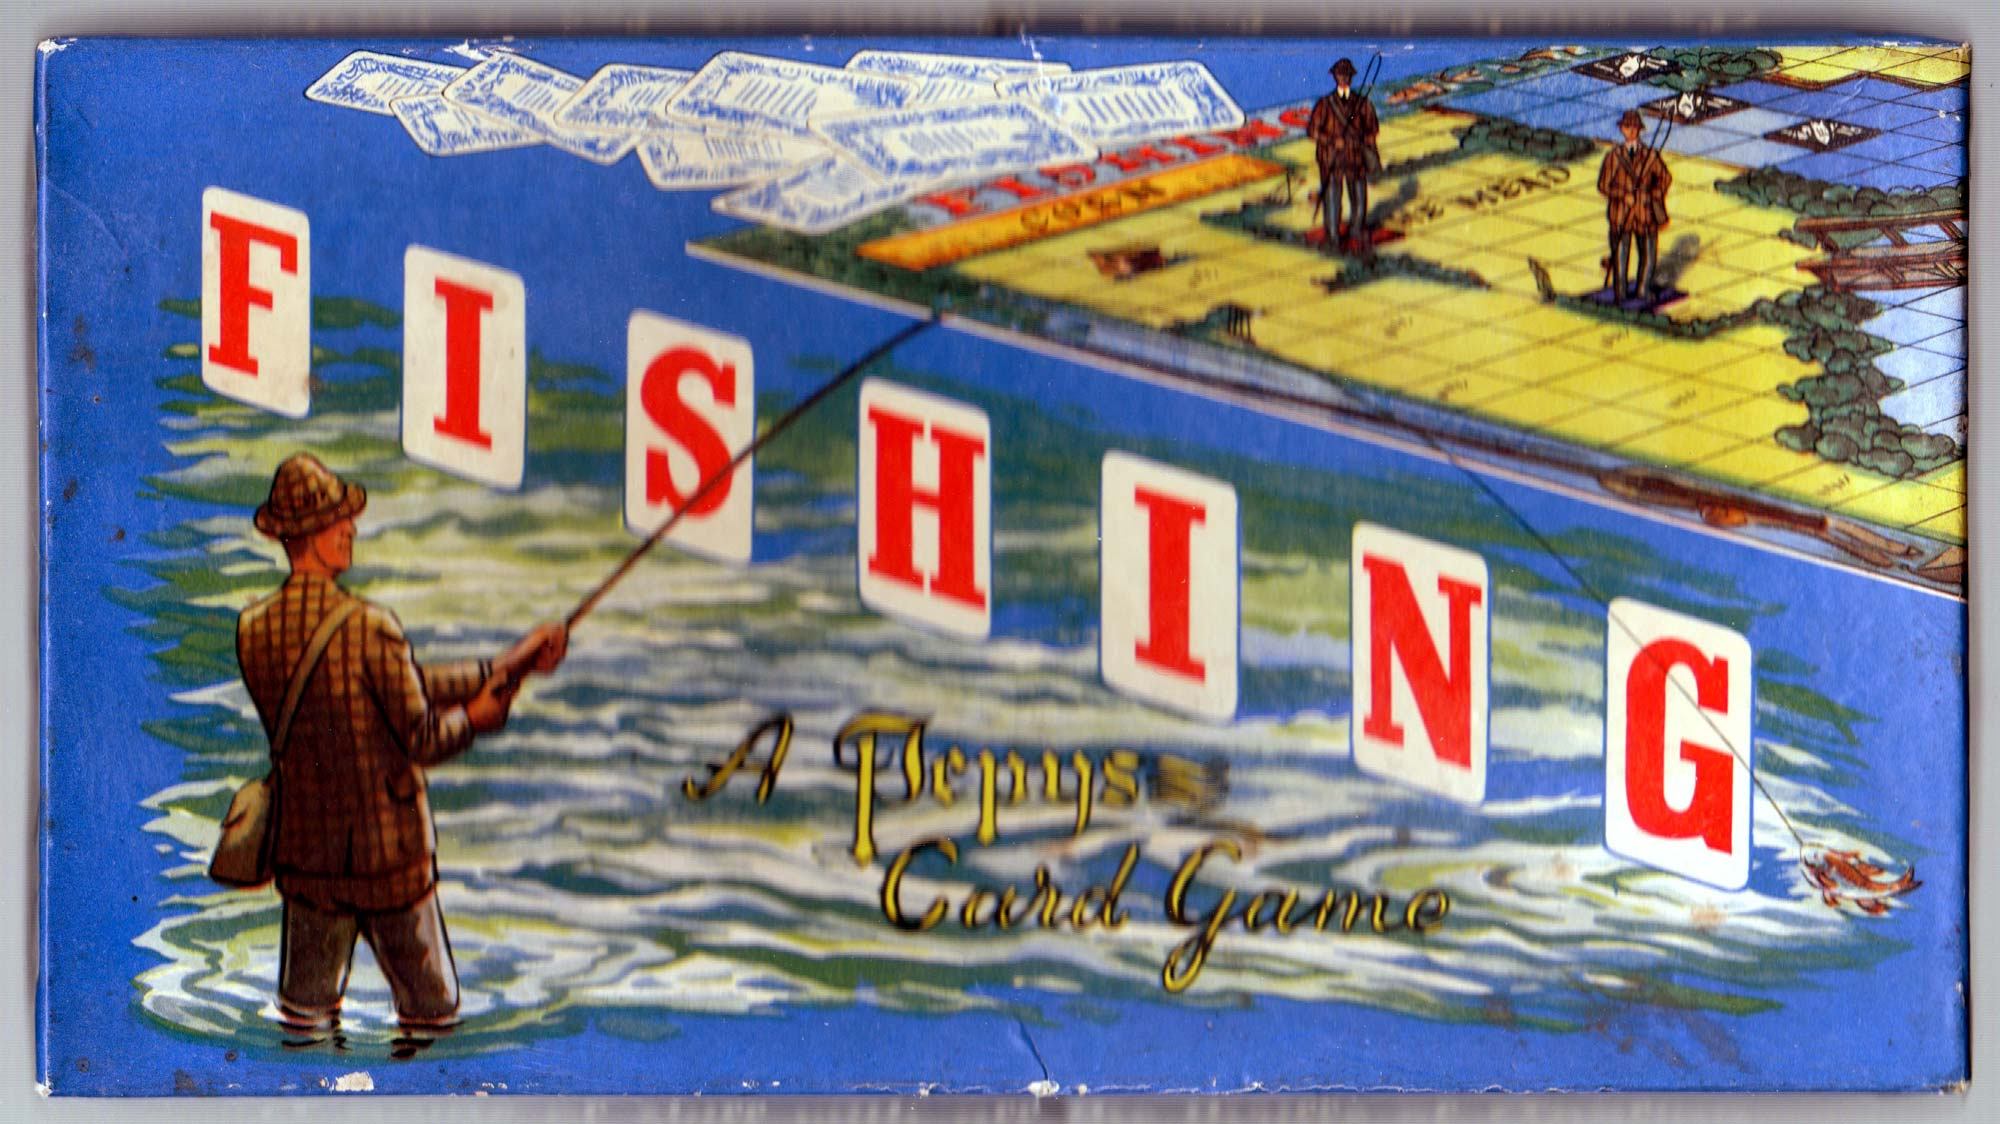 Box for Fishing published by Pepys Games, 1951